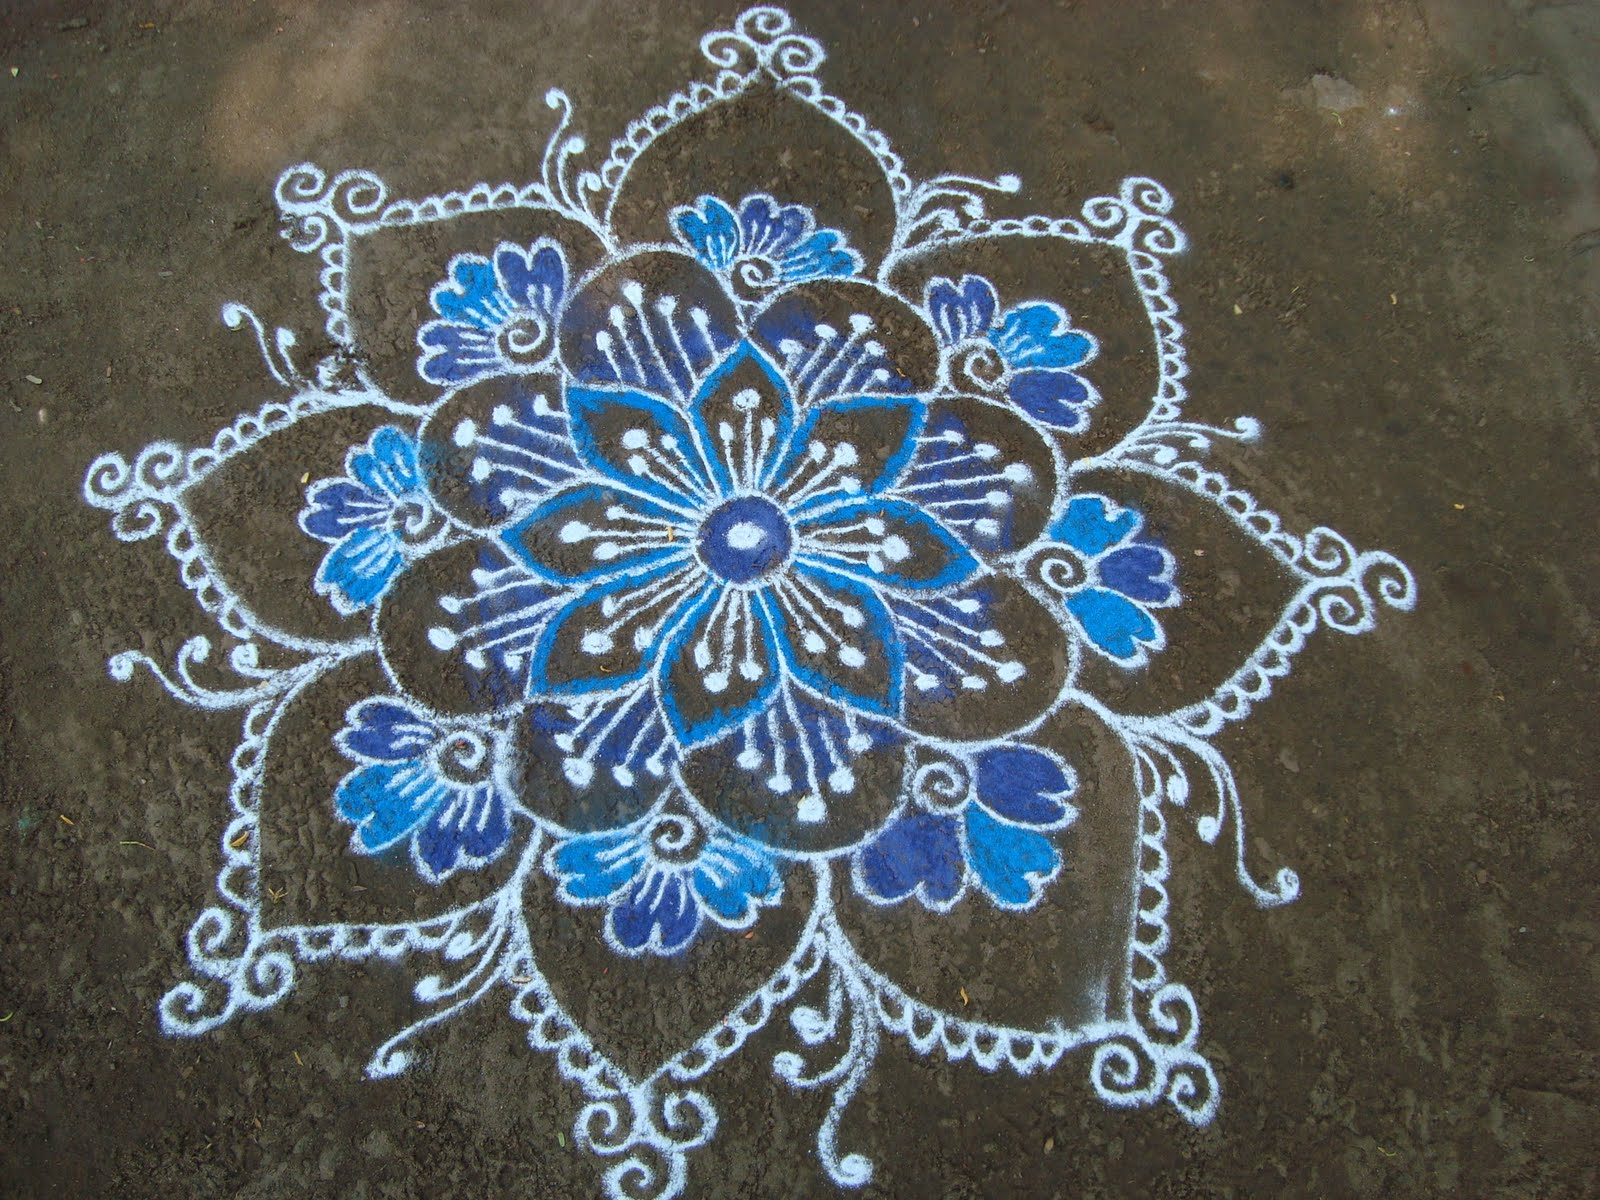 rangoli designs wallpaper stars - photo #31